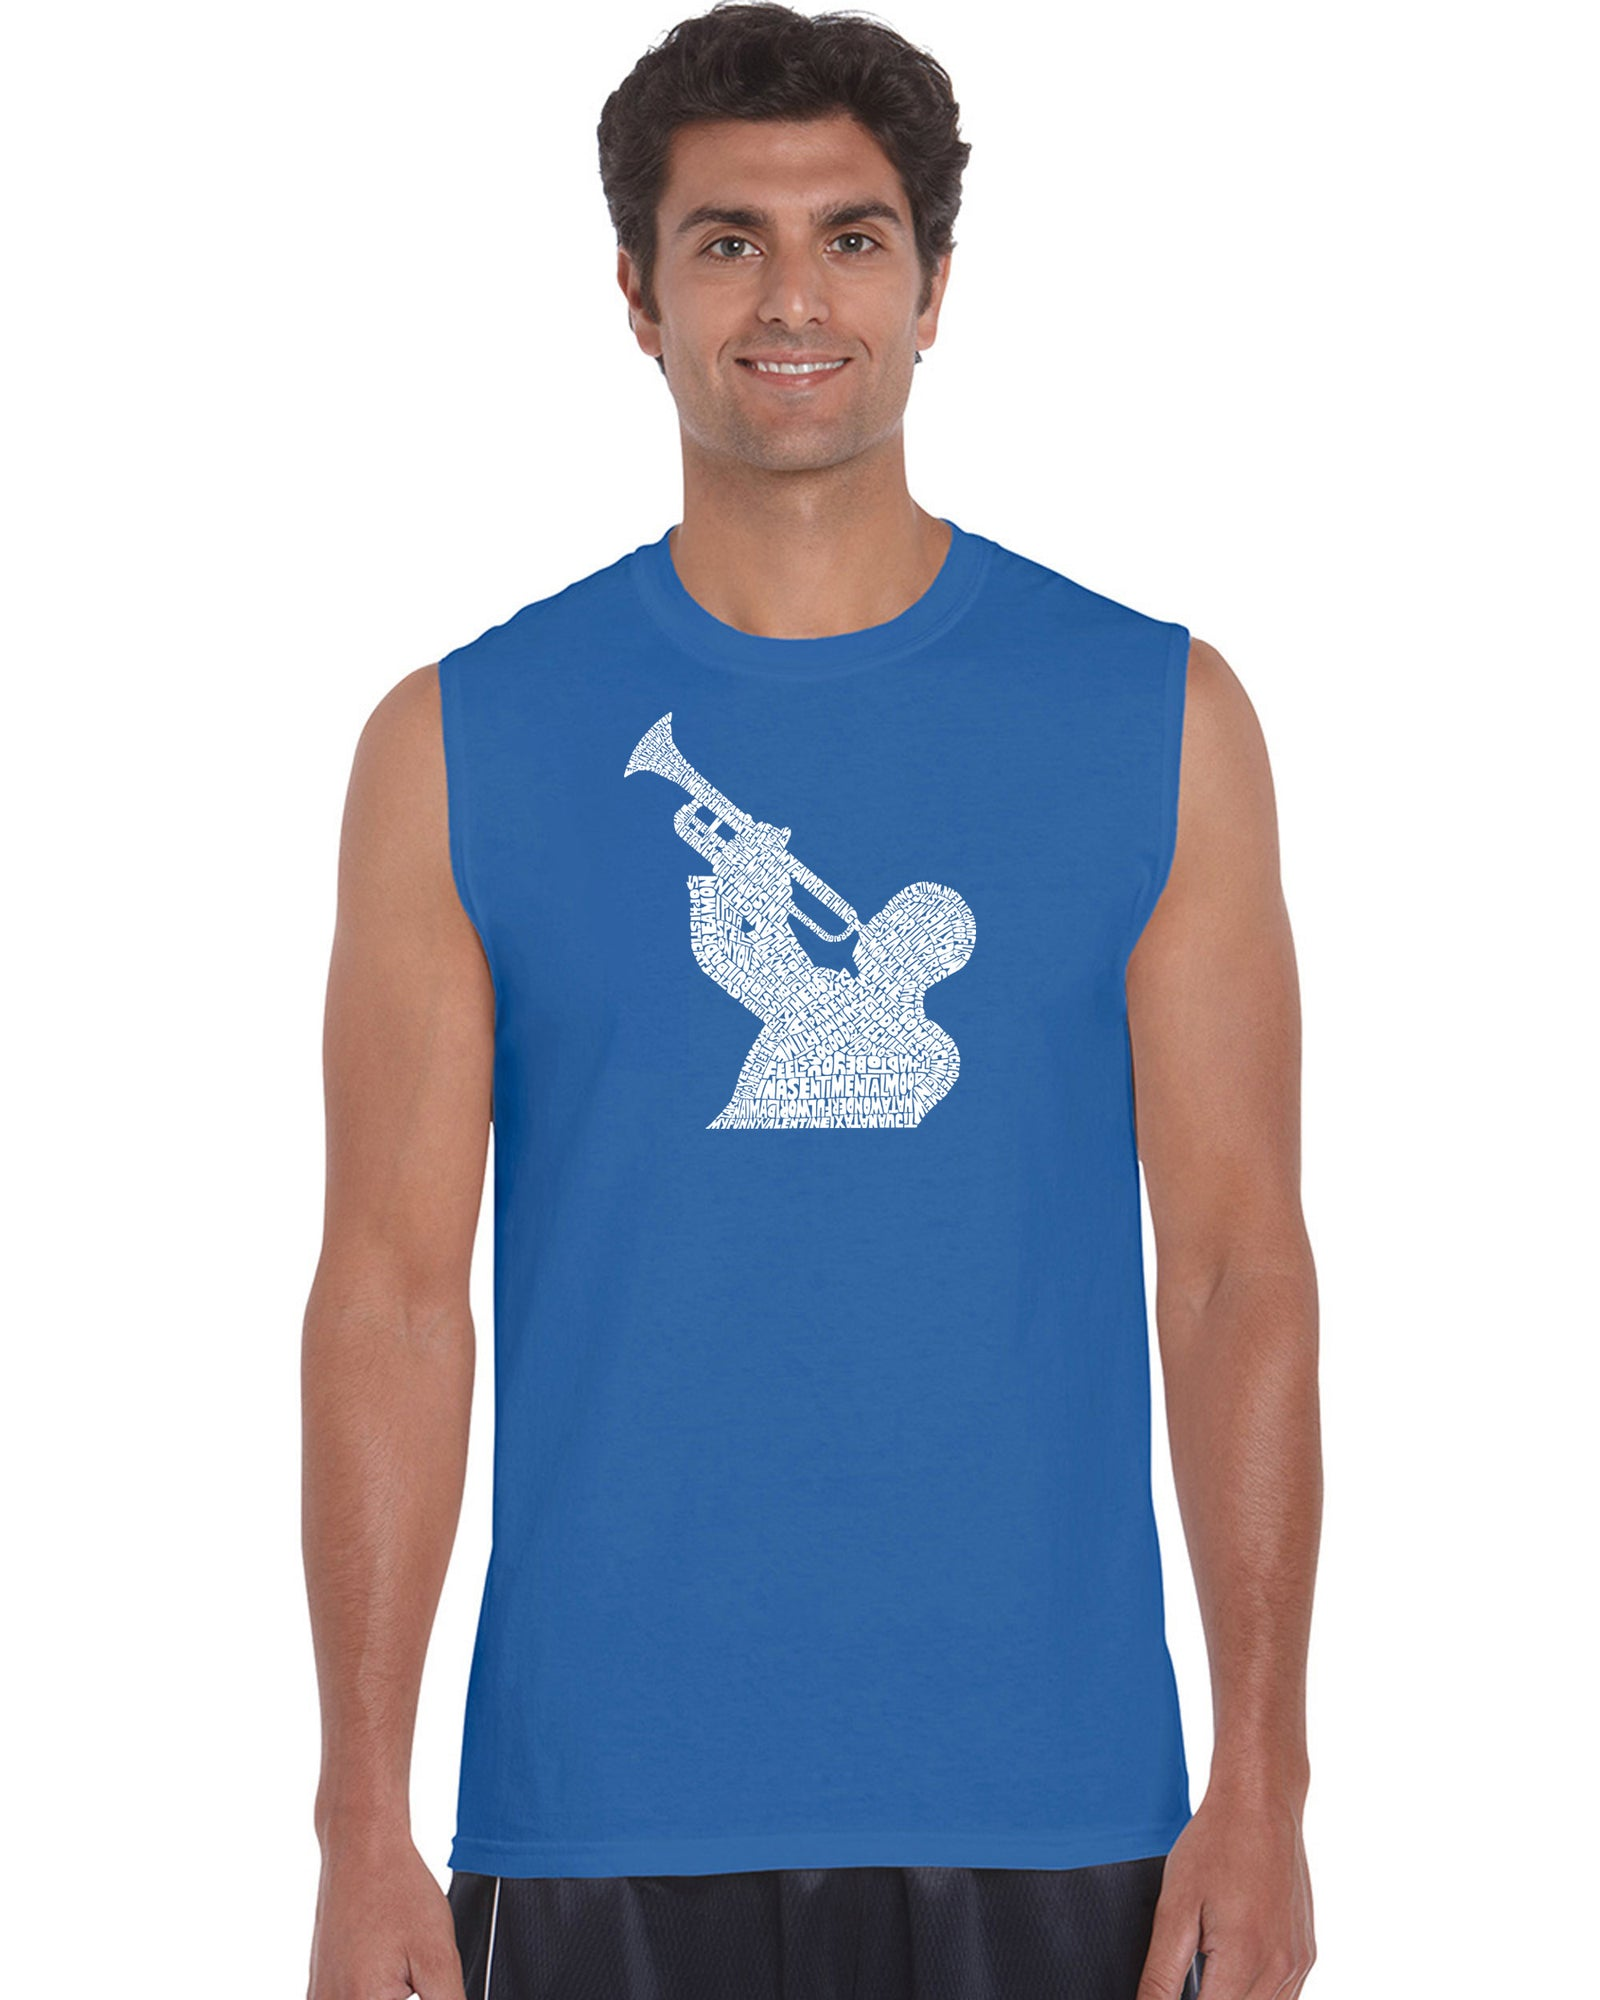 Men's Sleeveless T-shirt - ALL TIME JAZZ SONGS